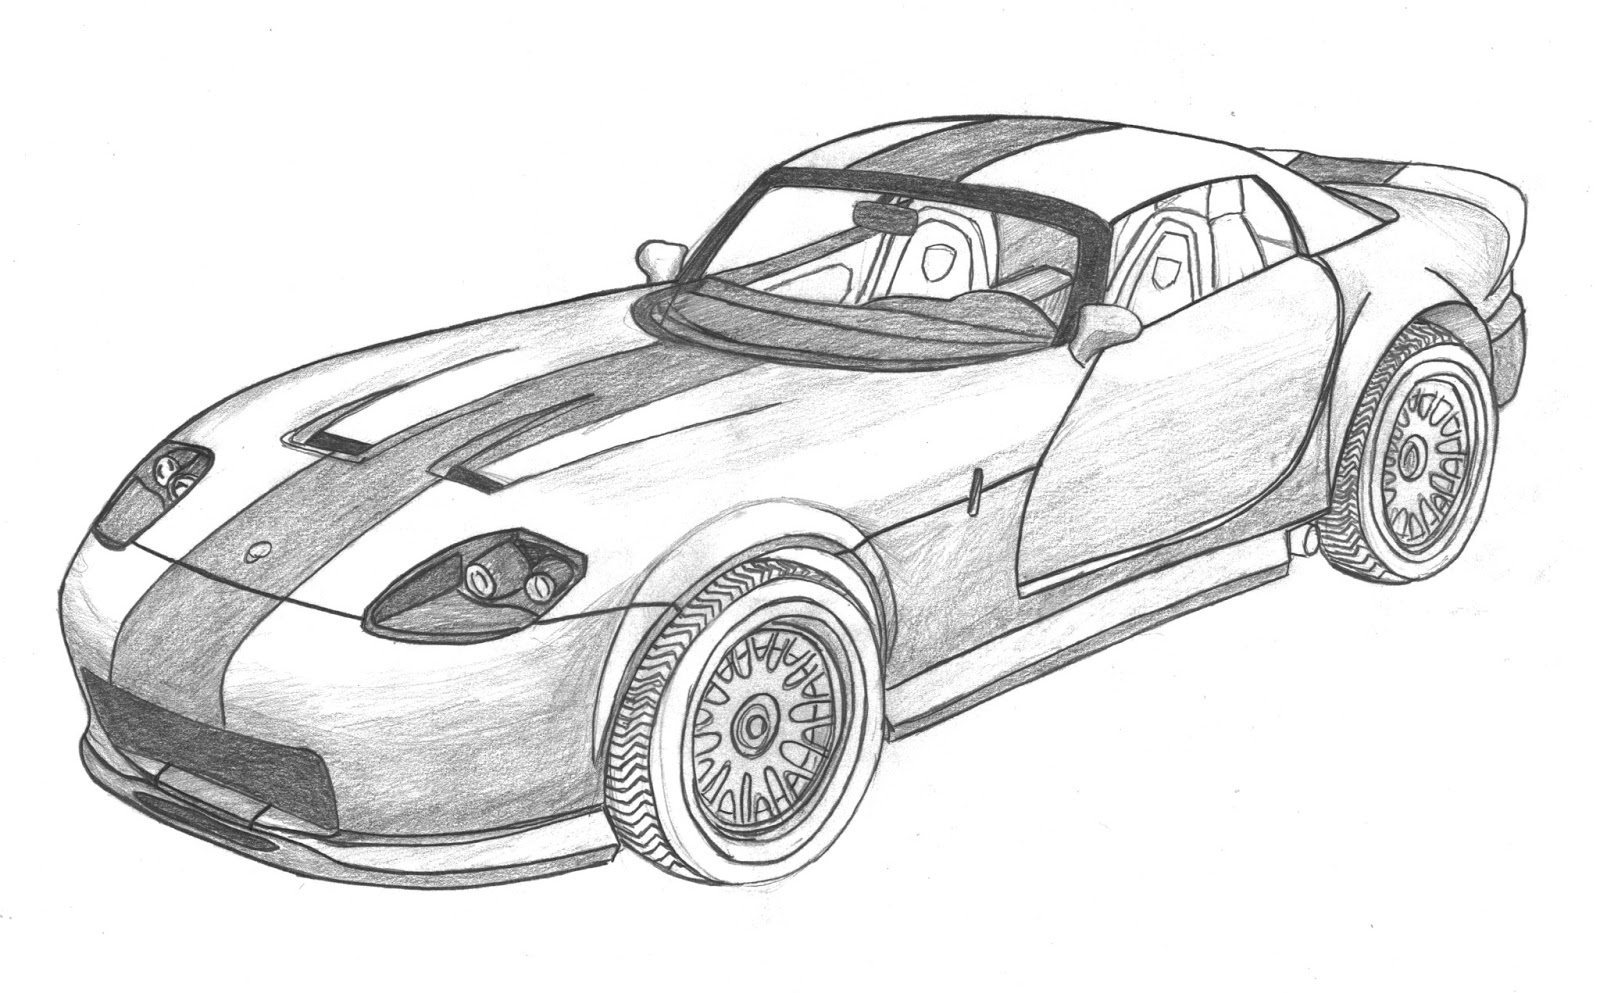 Auto together with Dibujo Para Colorear Dodge Viper I5438 also Mm Coloring Page together with Coloring Pages Of Cars furthermore 38. on dodge viper coloring pages